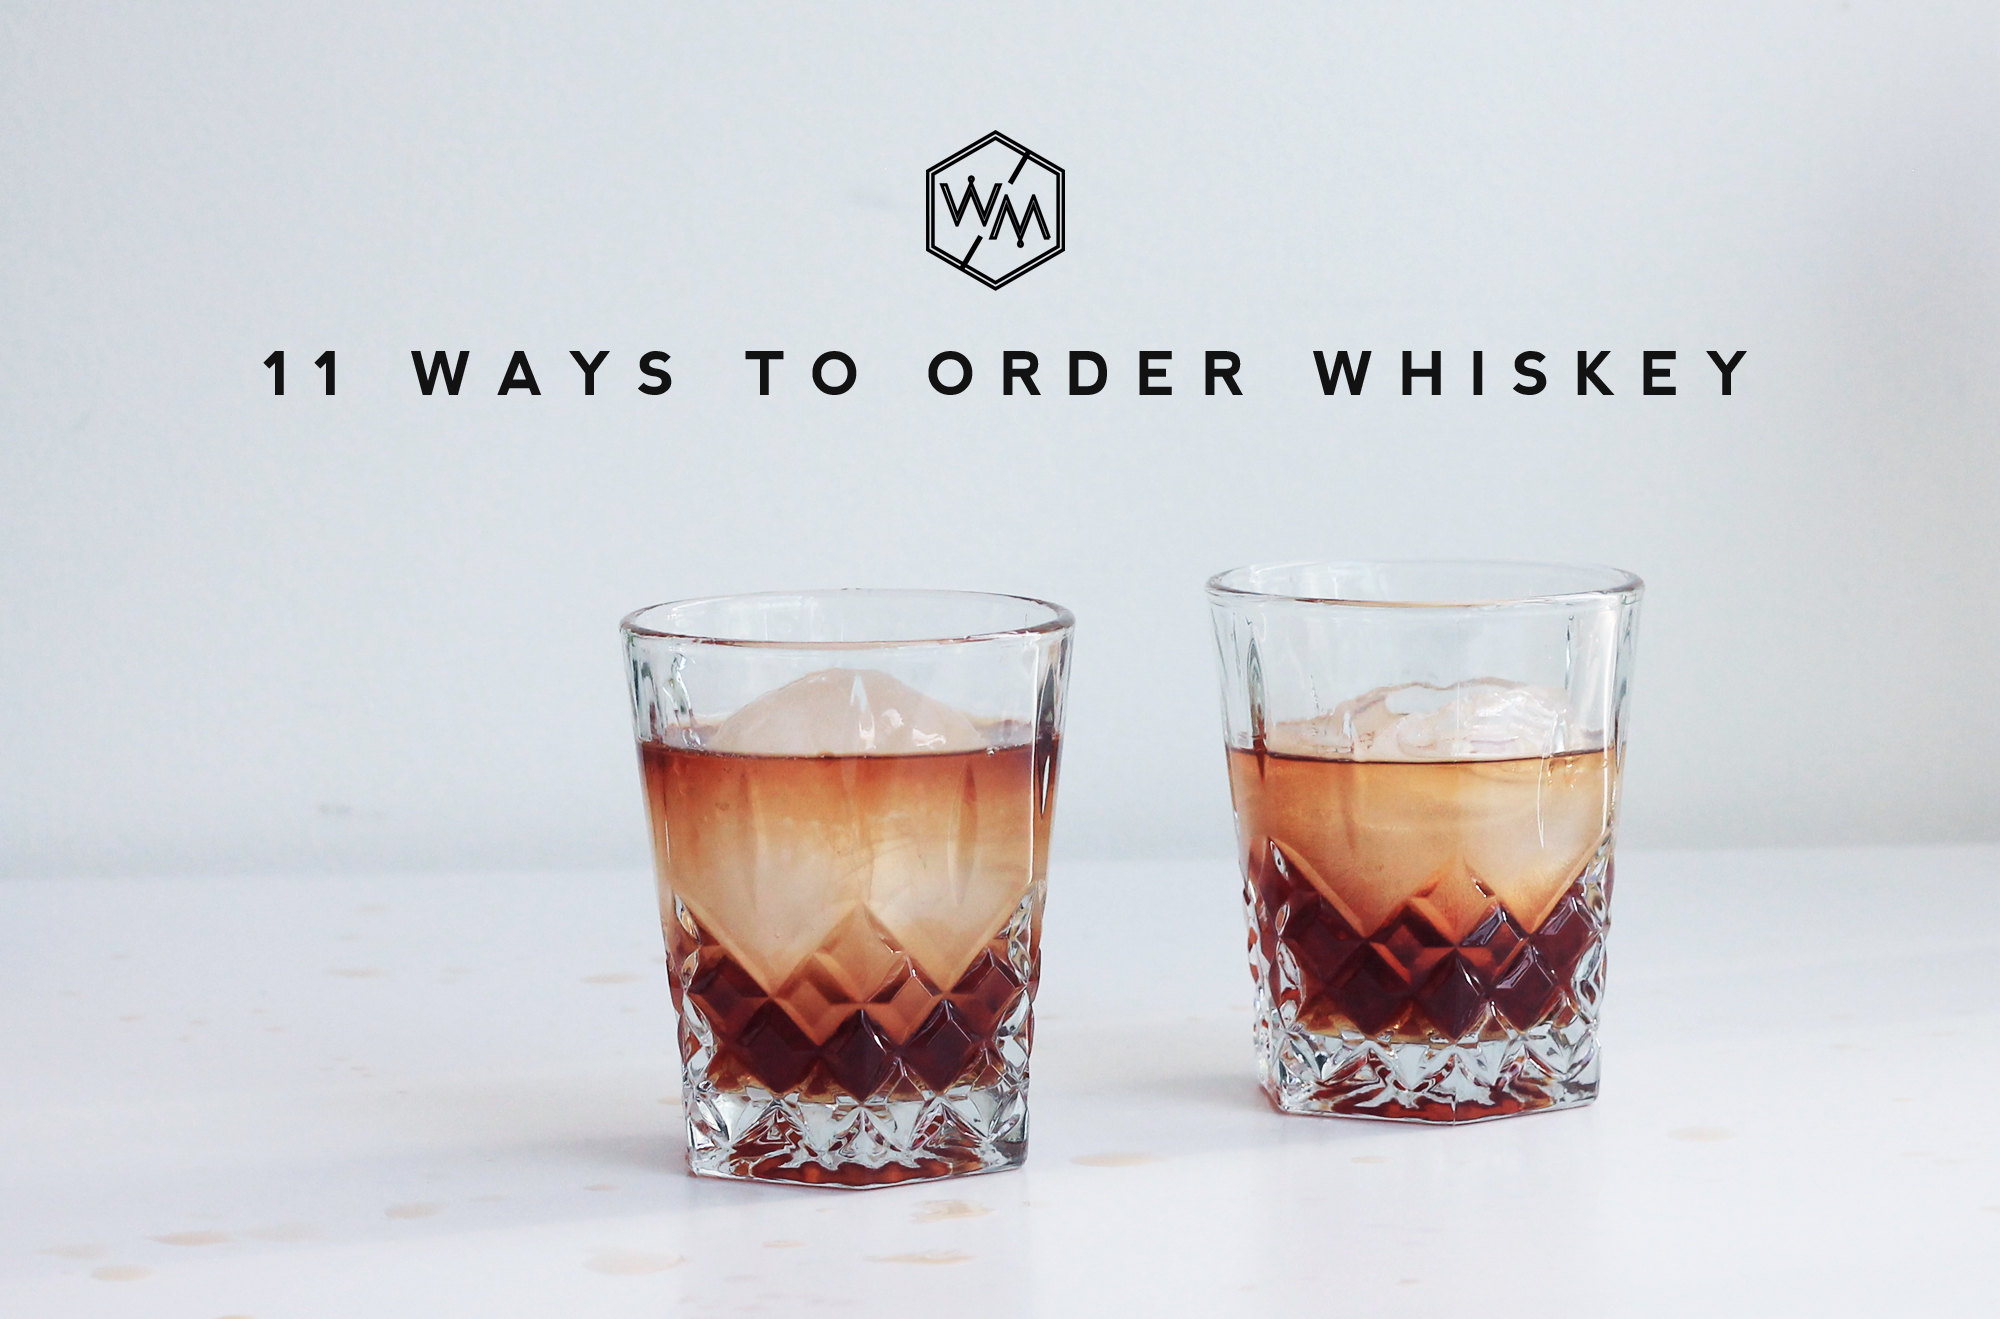 11 ways to order - whiskey muse